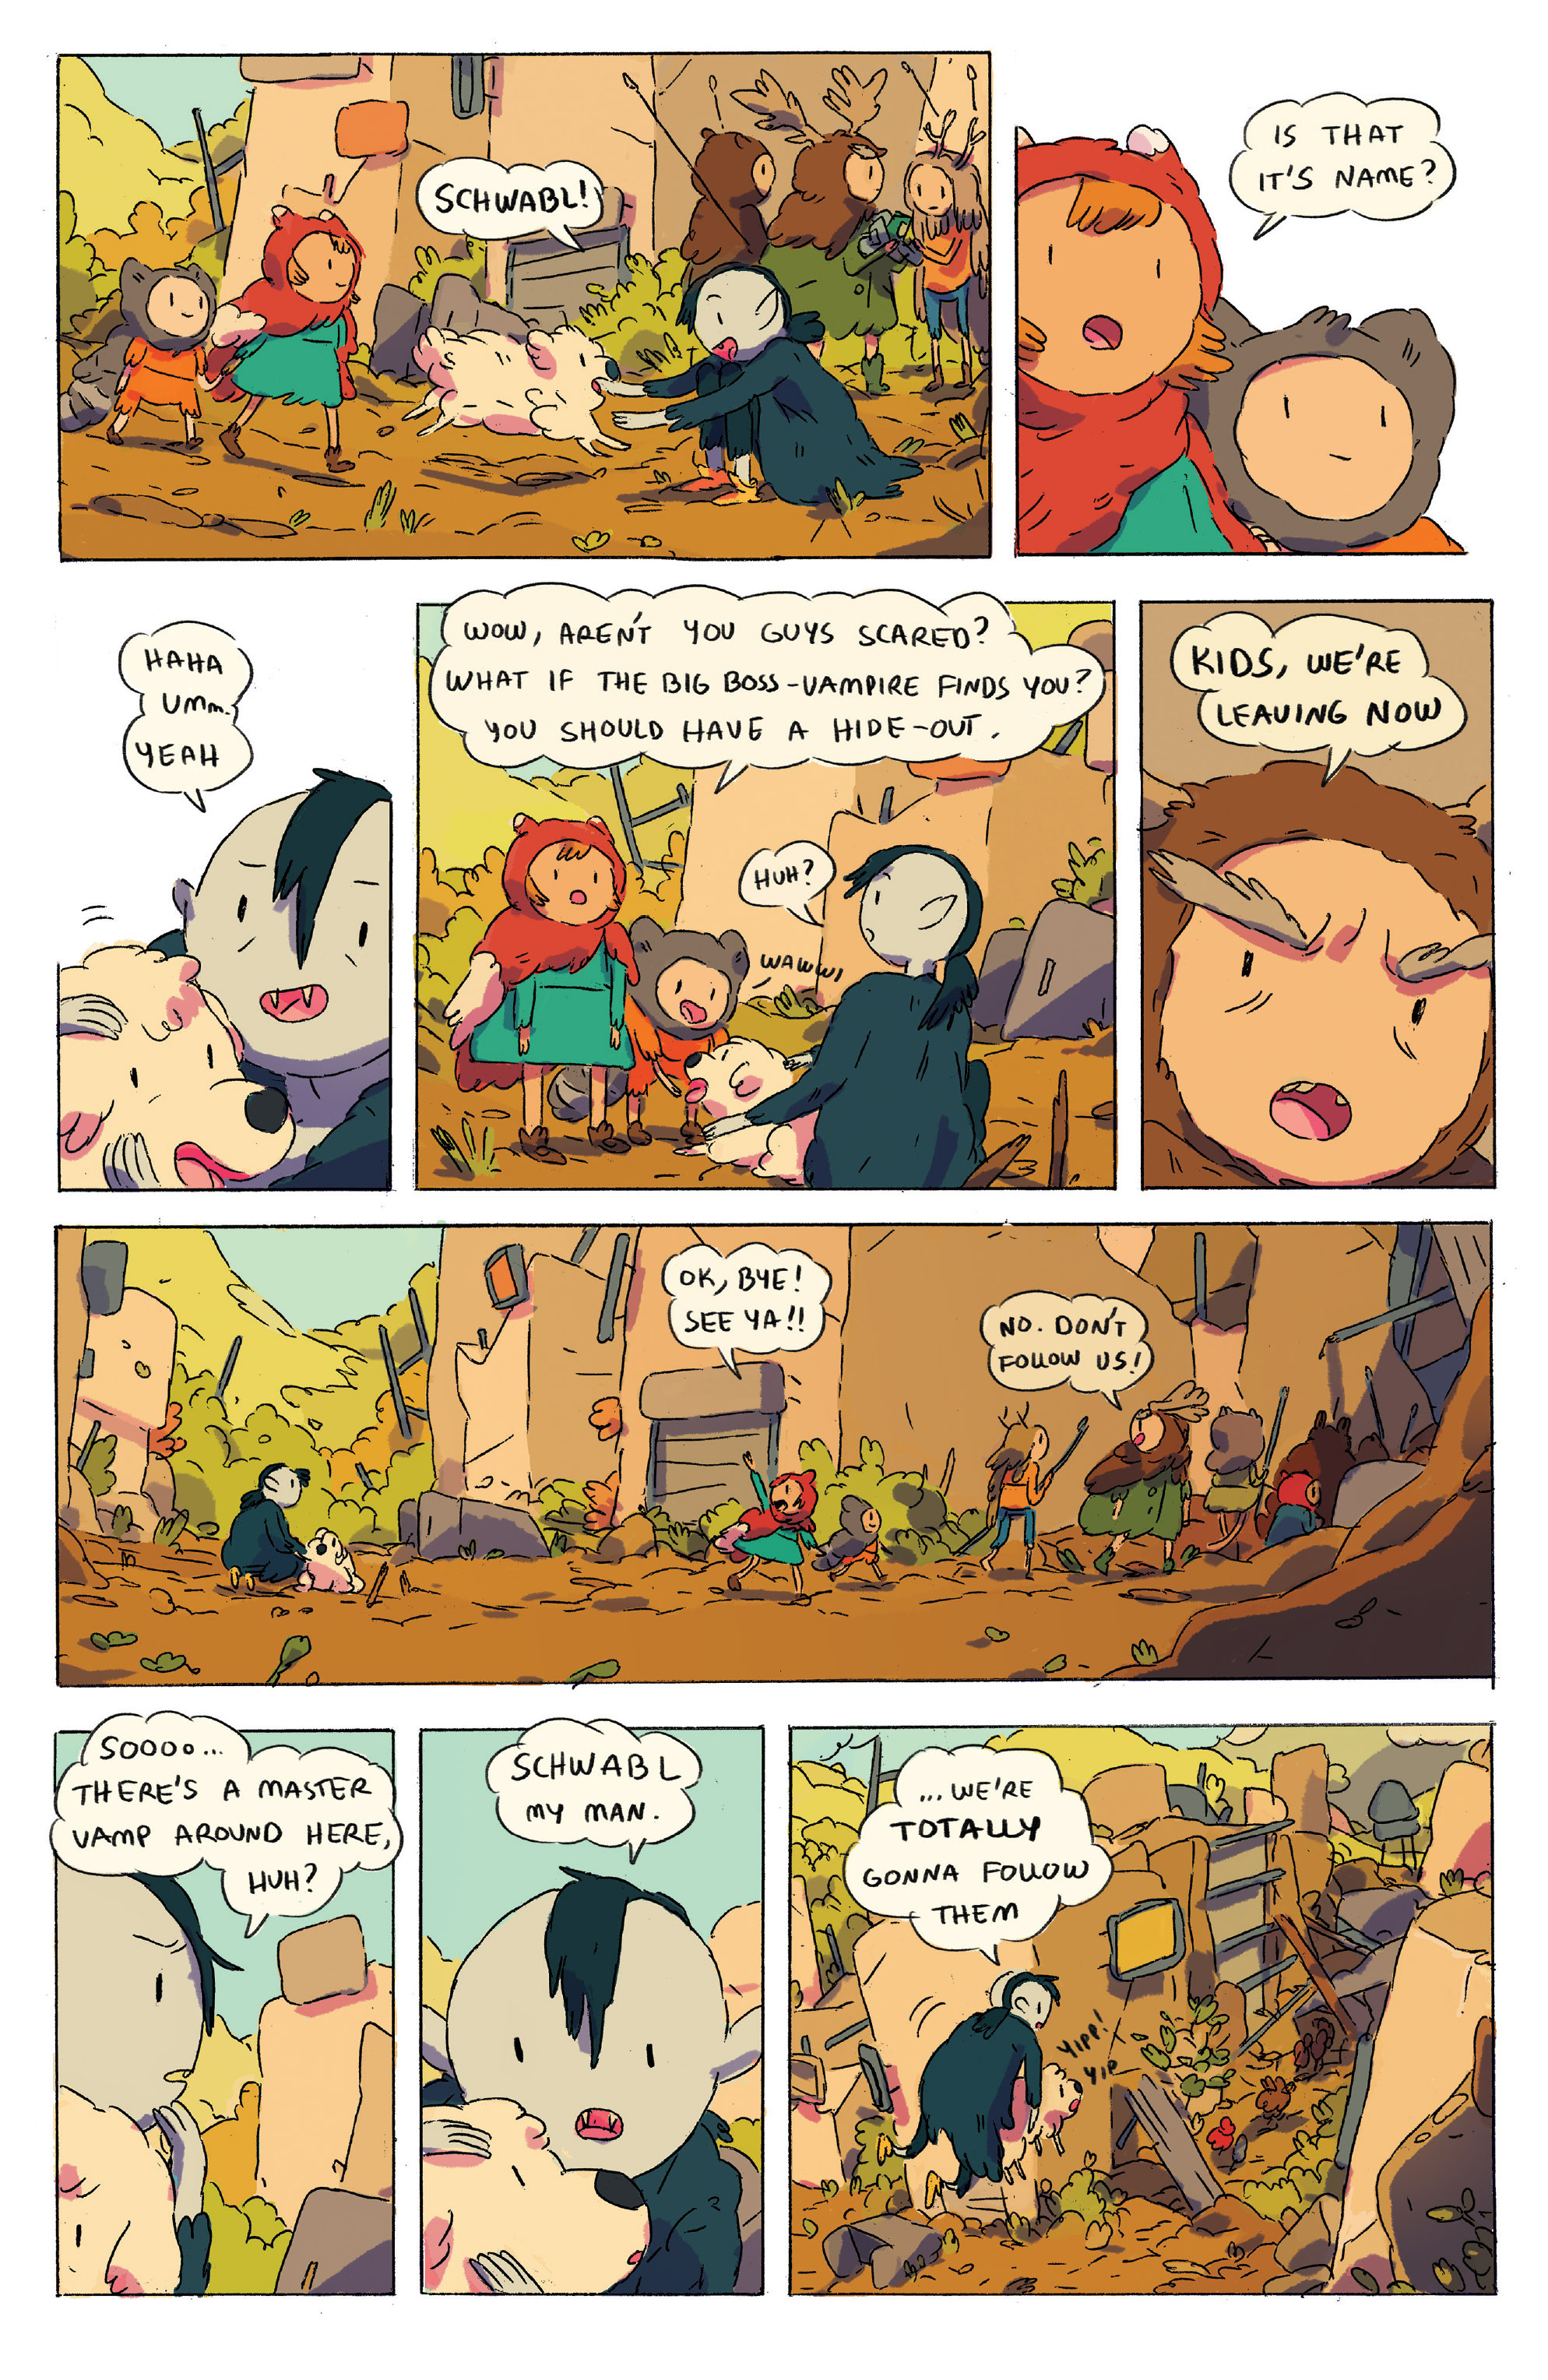 Read online Adventure Time comic -  Issue # _2015 Spoooktacular - 11